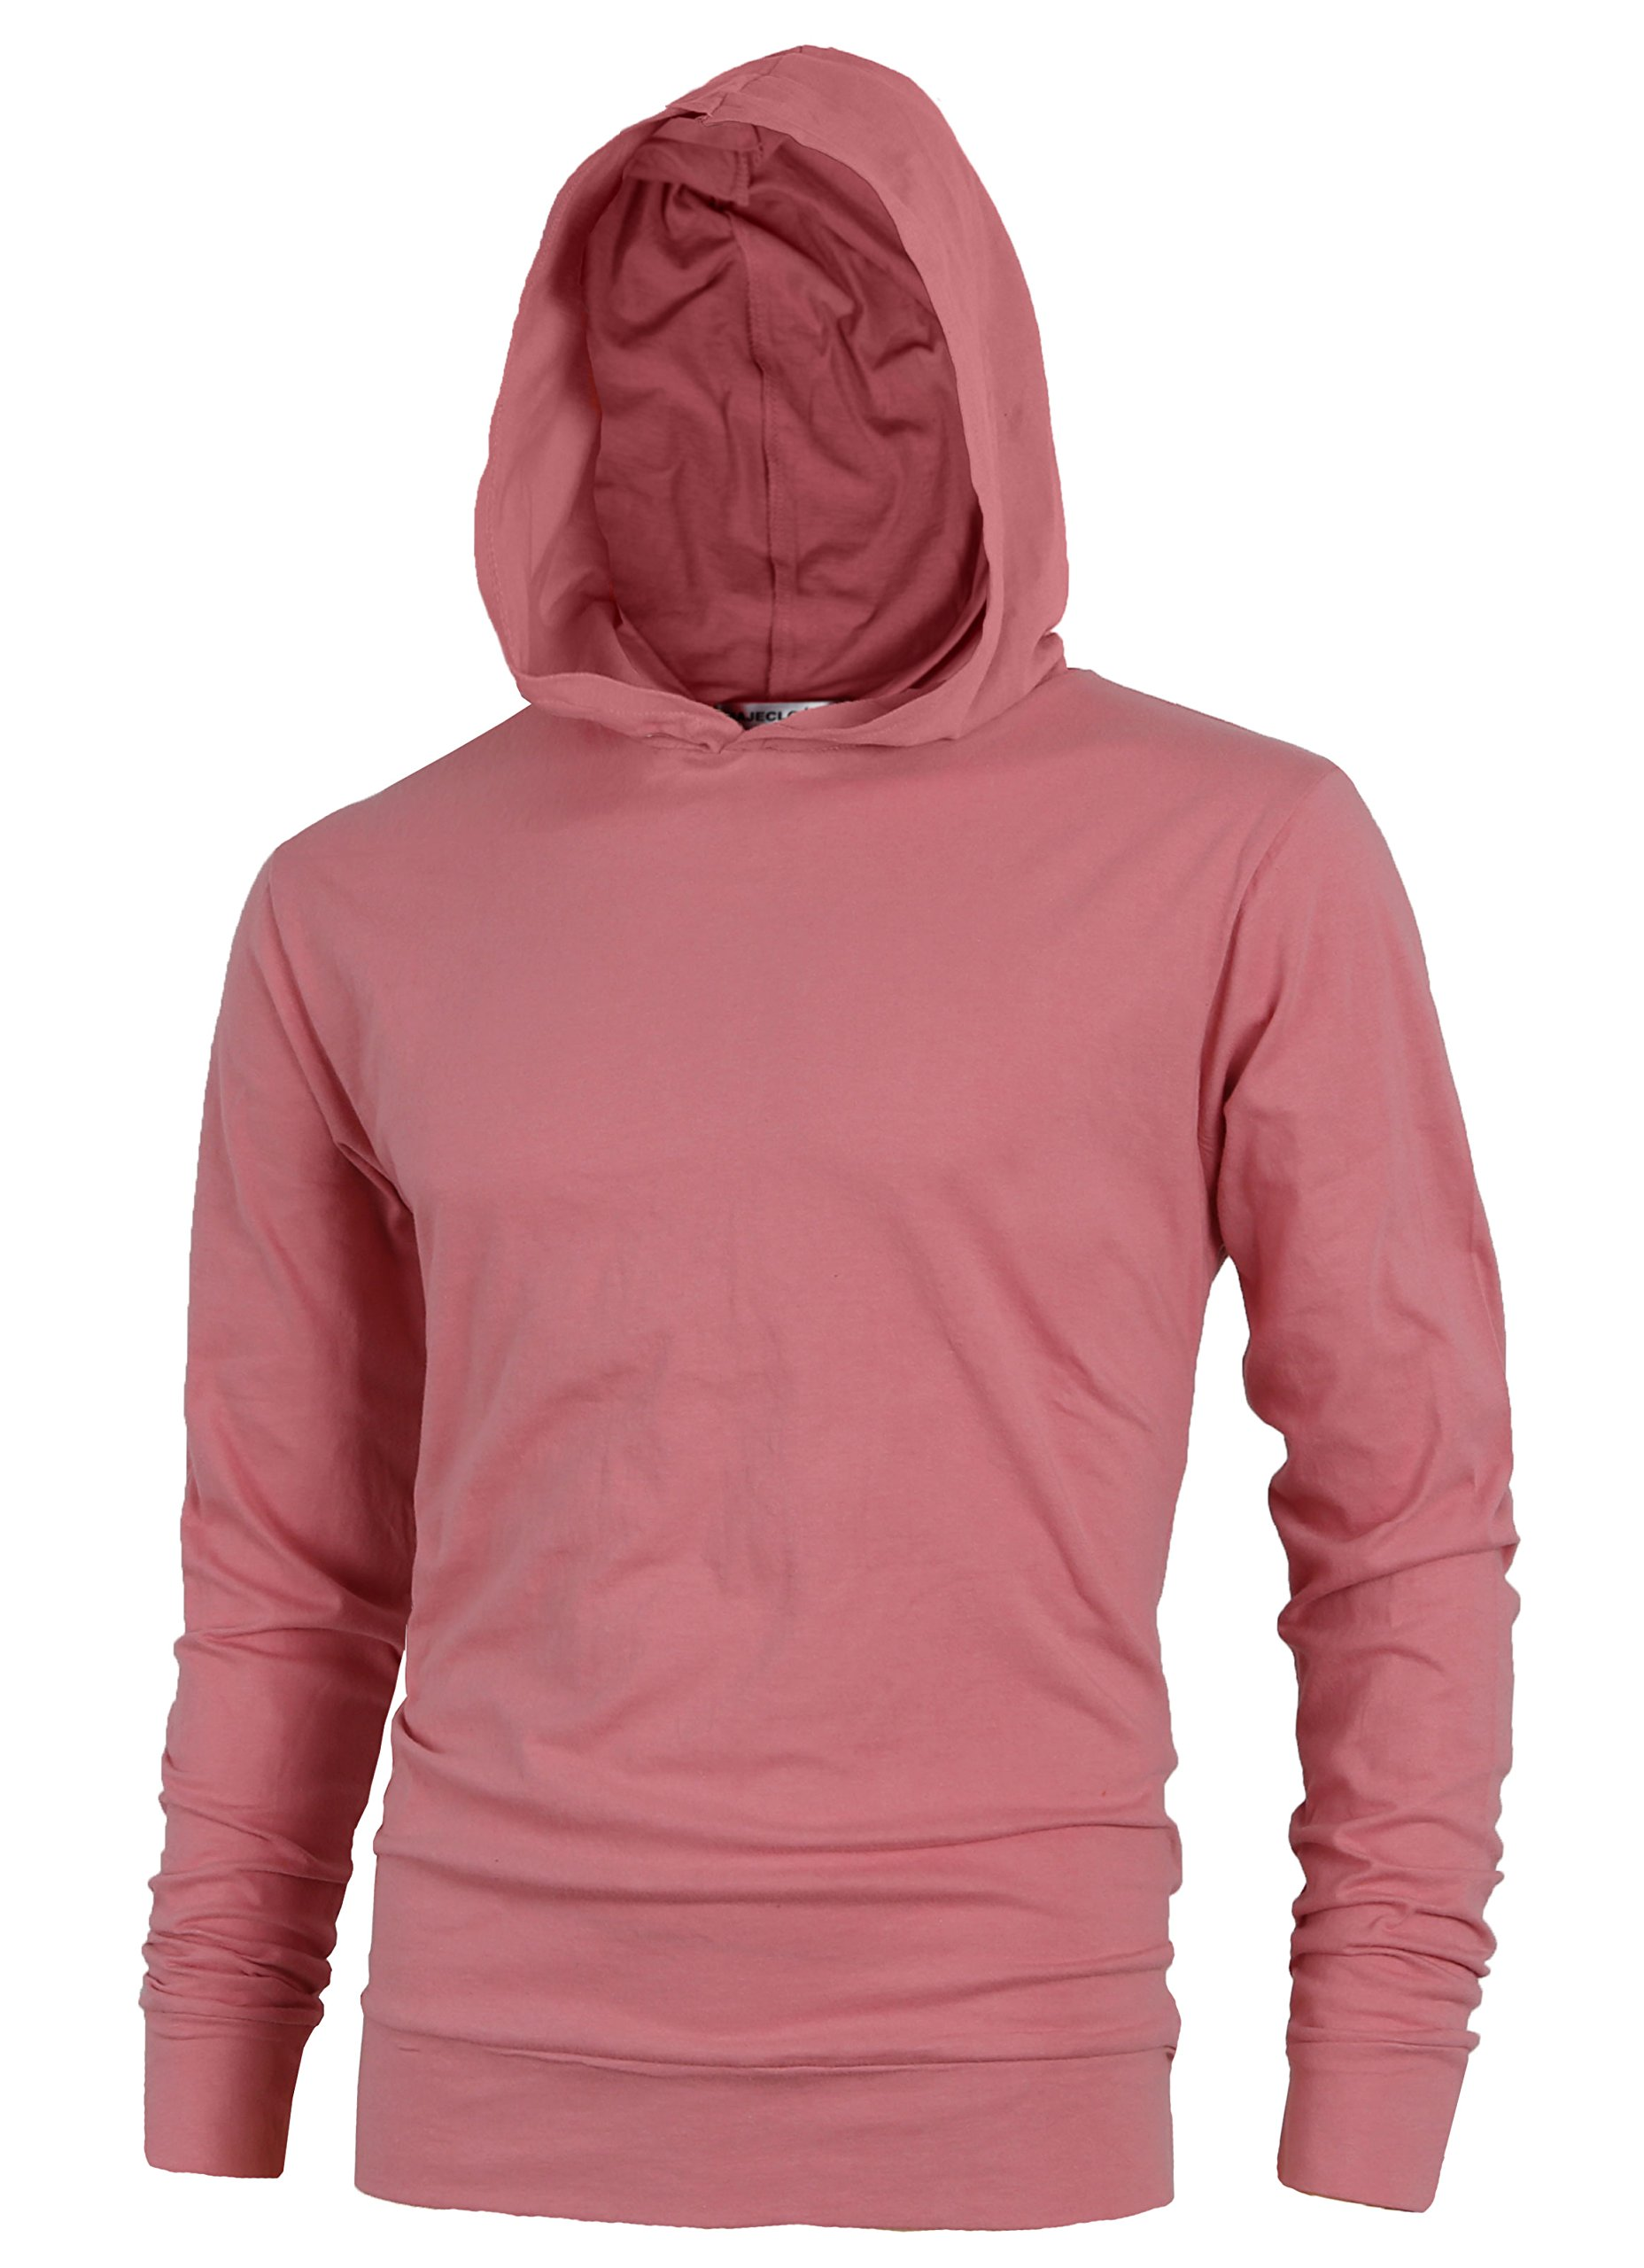 MAJECLO Mens Lightweight Cotton Pullover Long Sleeve Hoodie Sweatshirt(X-Large,Pink)